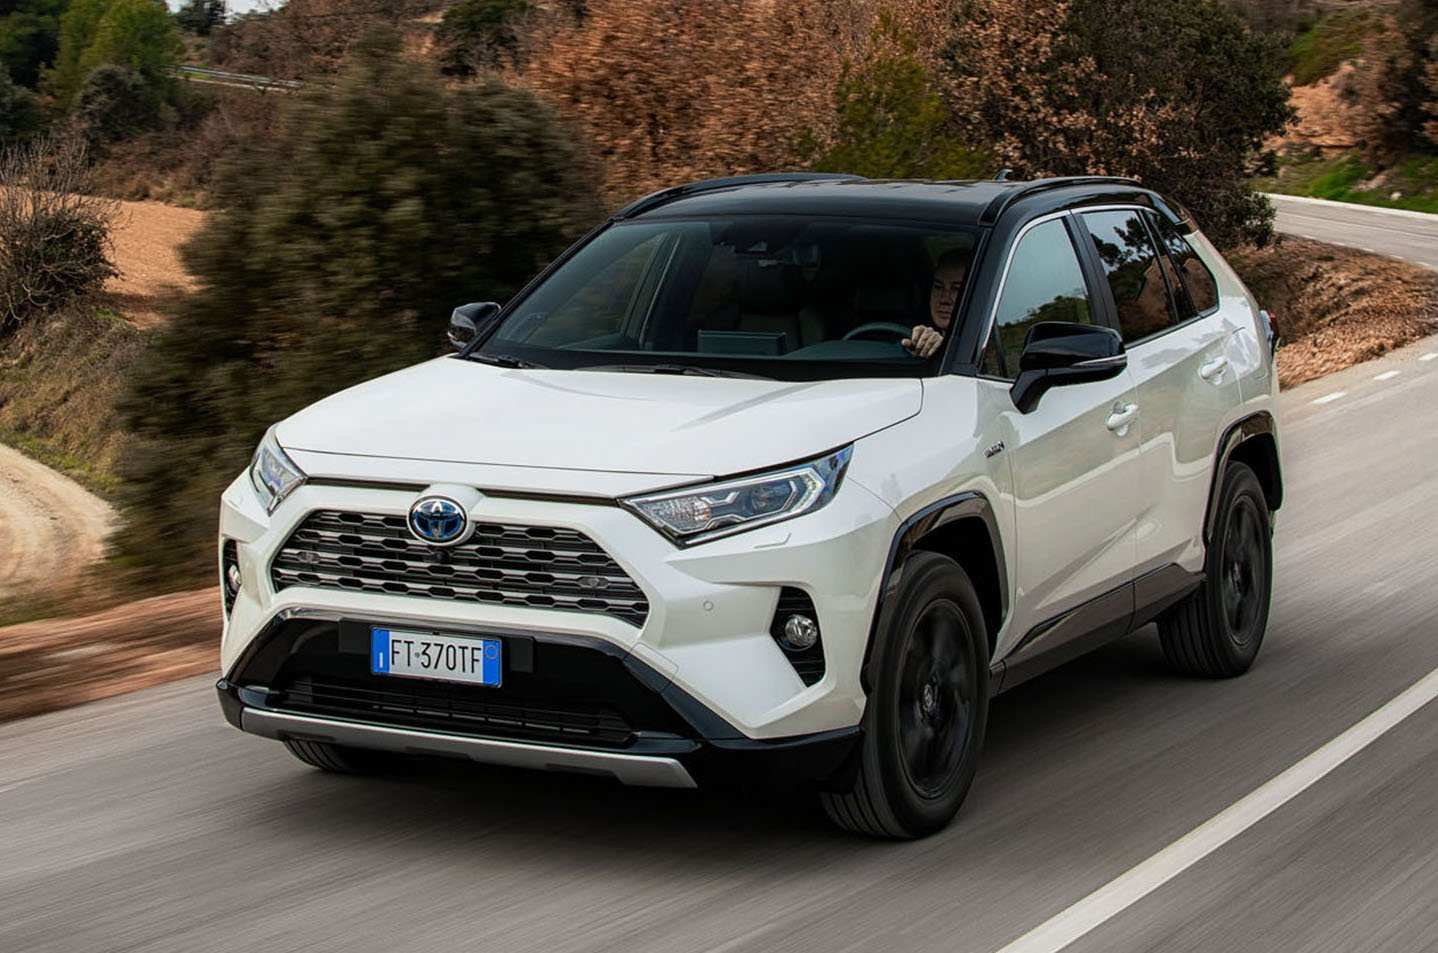 70 New Toyota 2019 Release Date Price and Review for Toyota 2019 Release Date